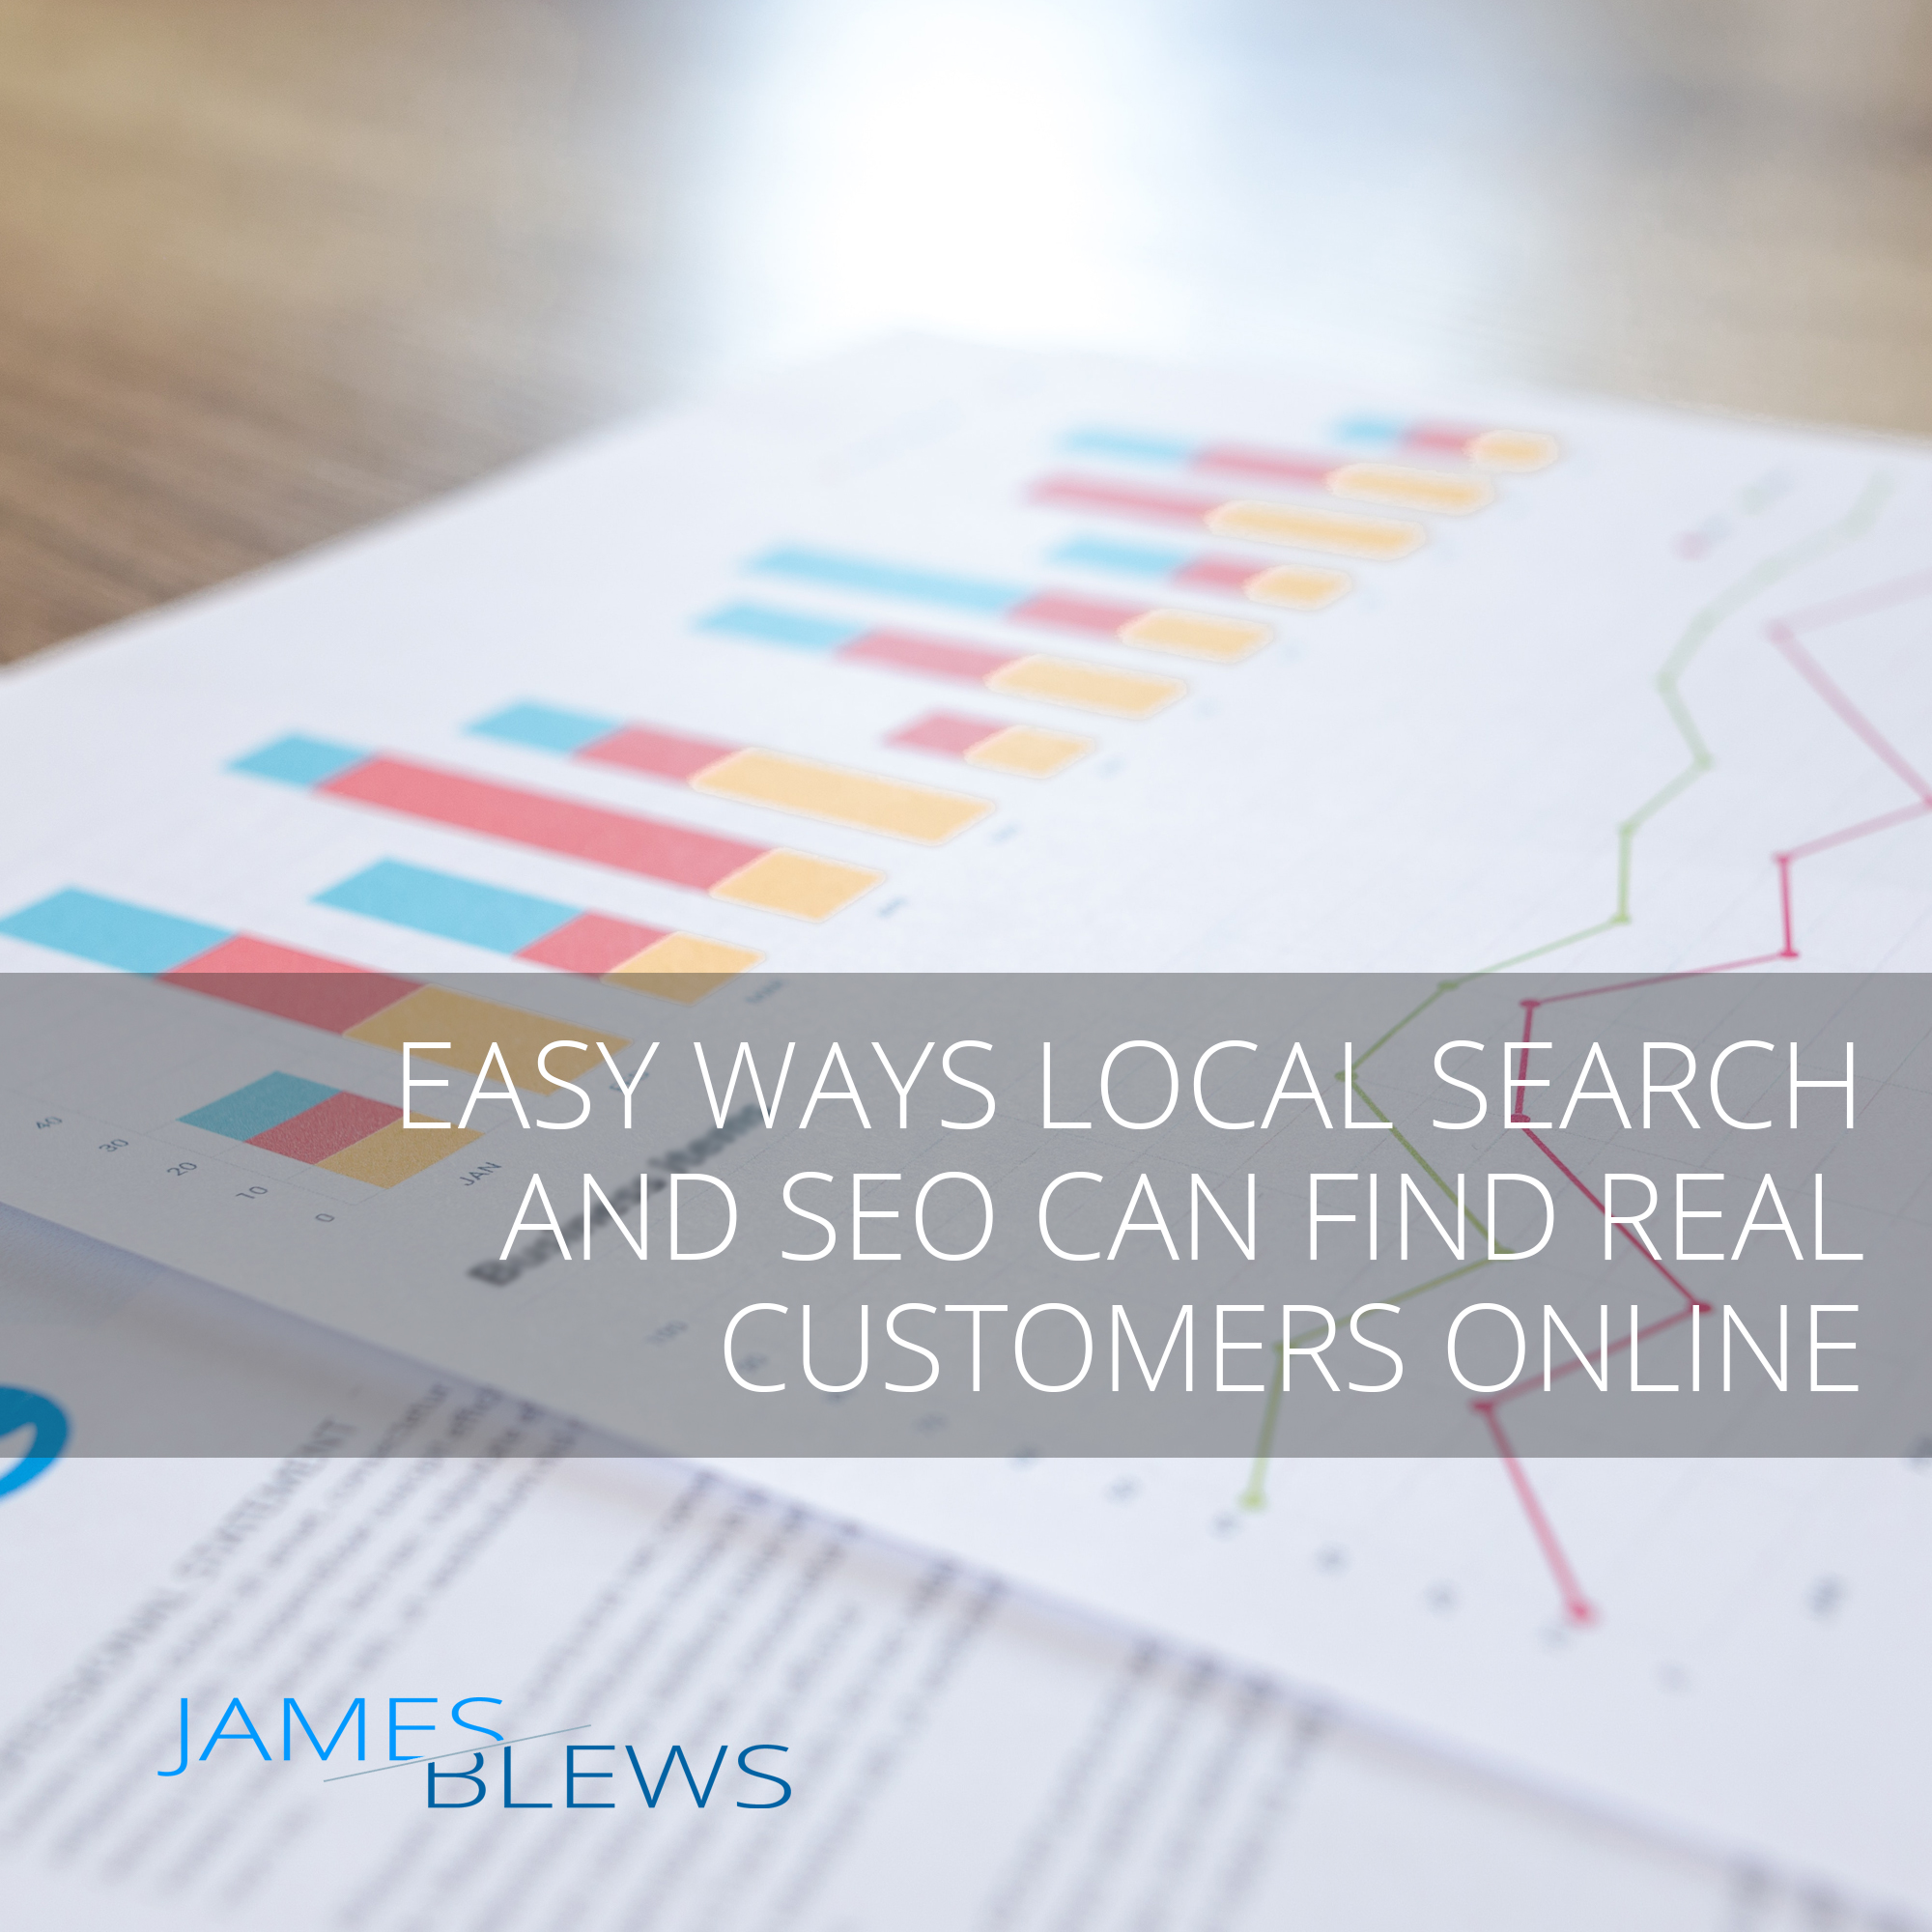 Easy Ways Local Search And SEO Can Find REAL Customers Online